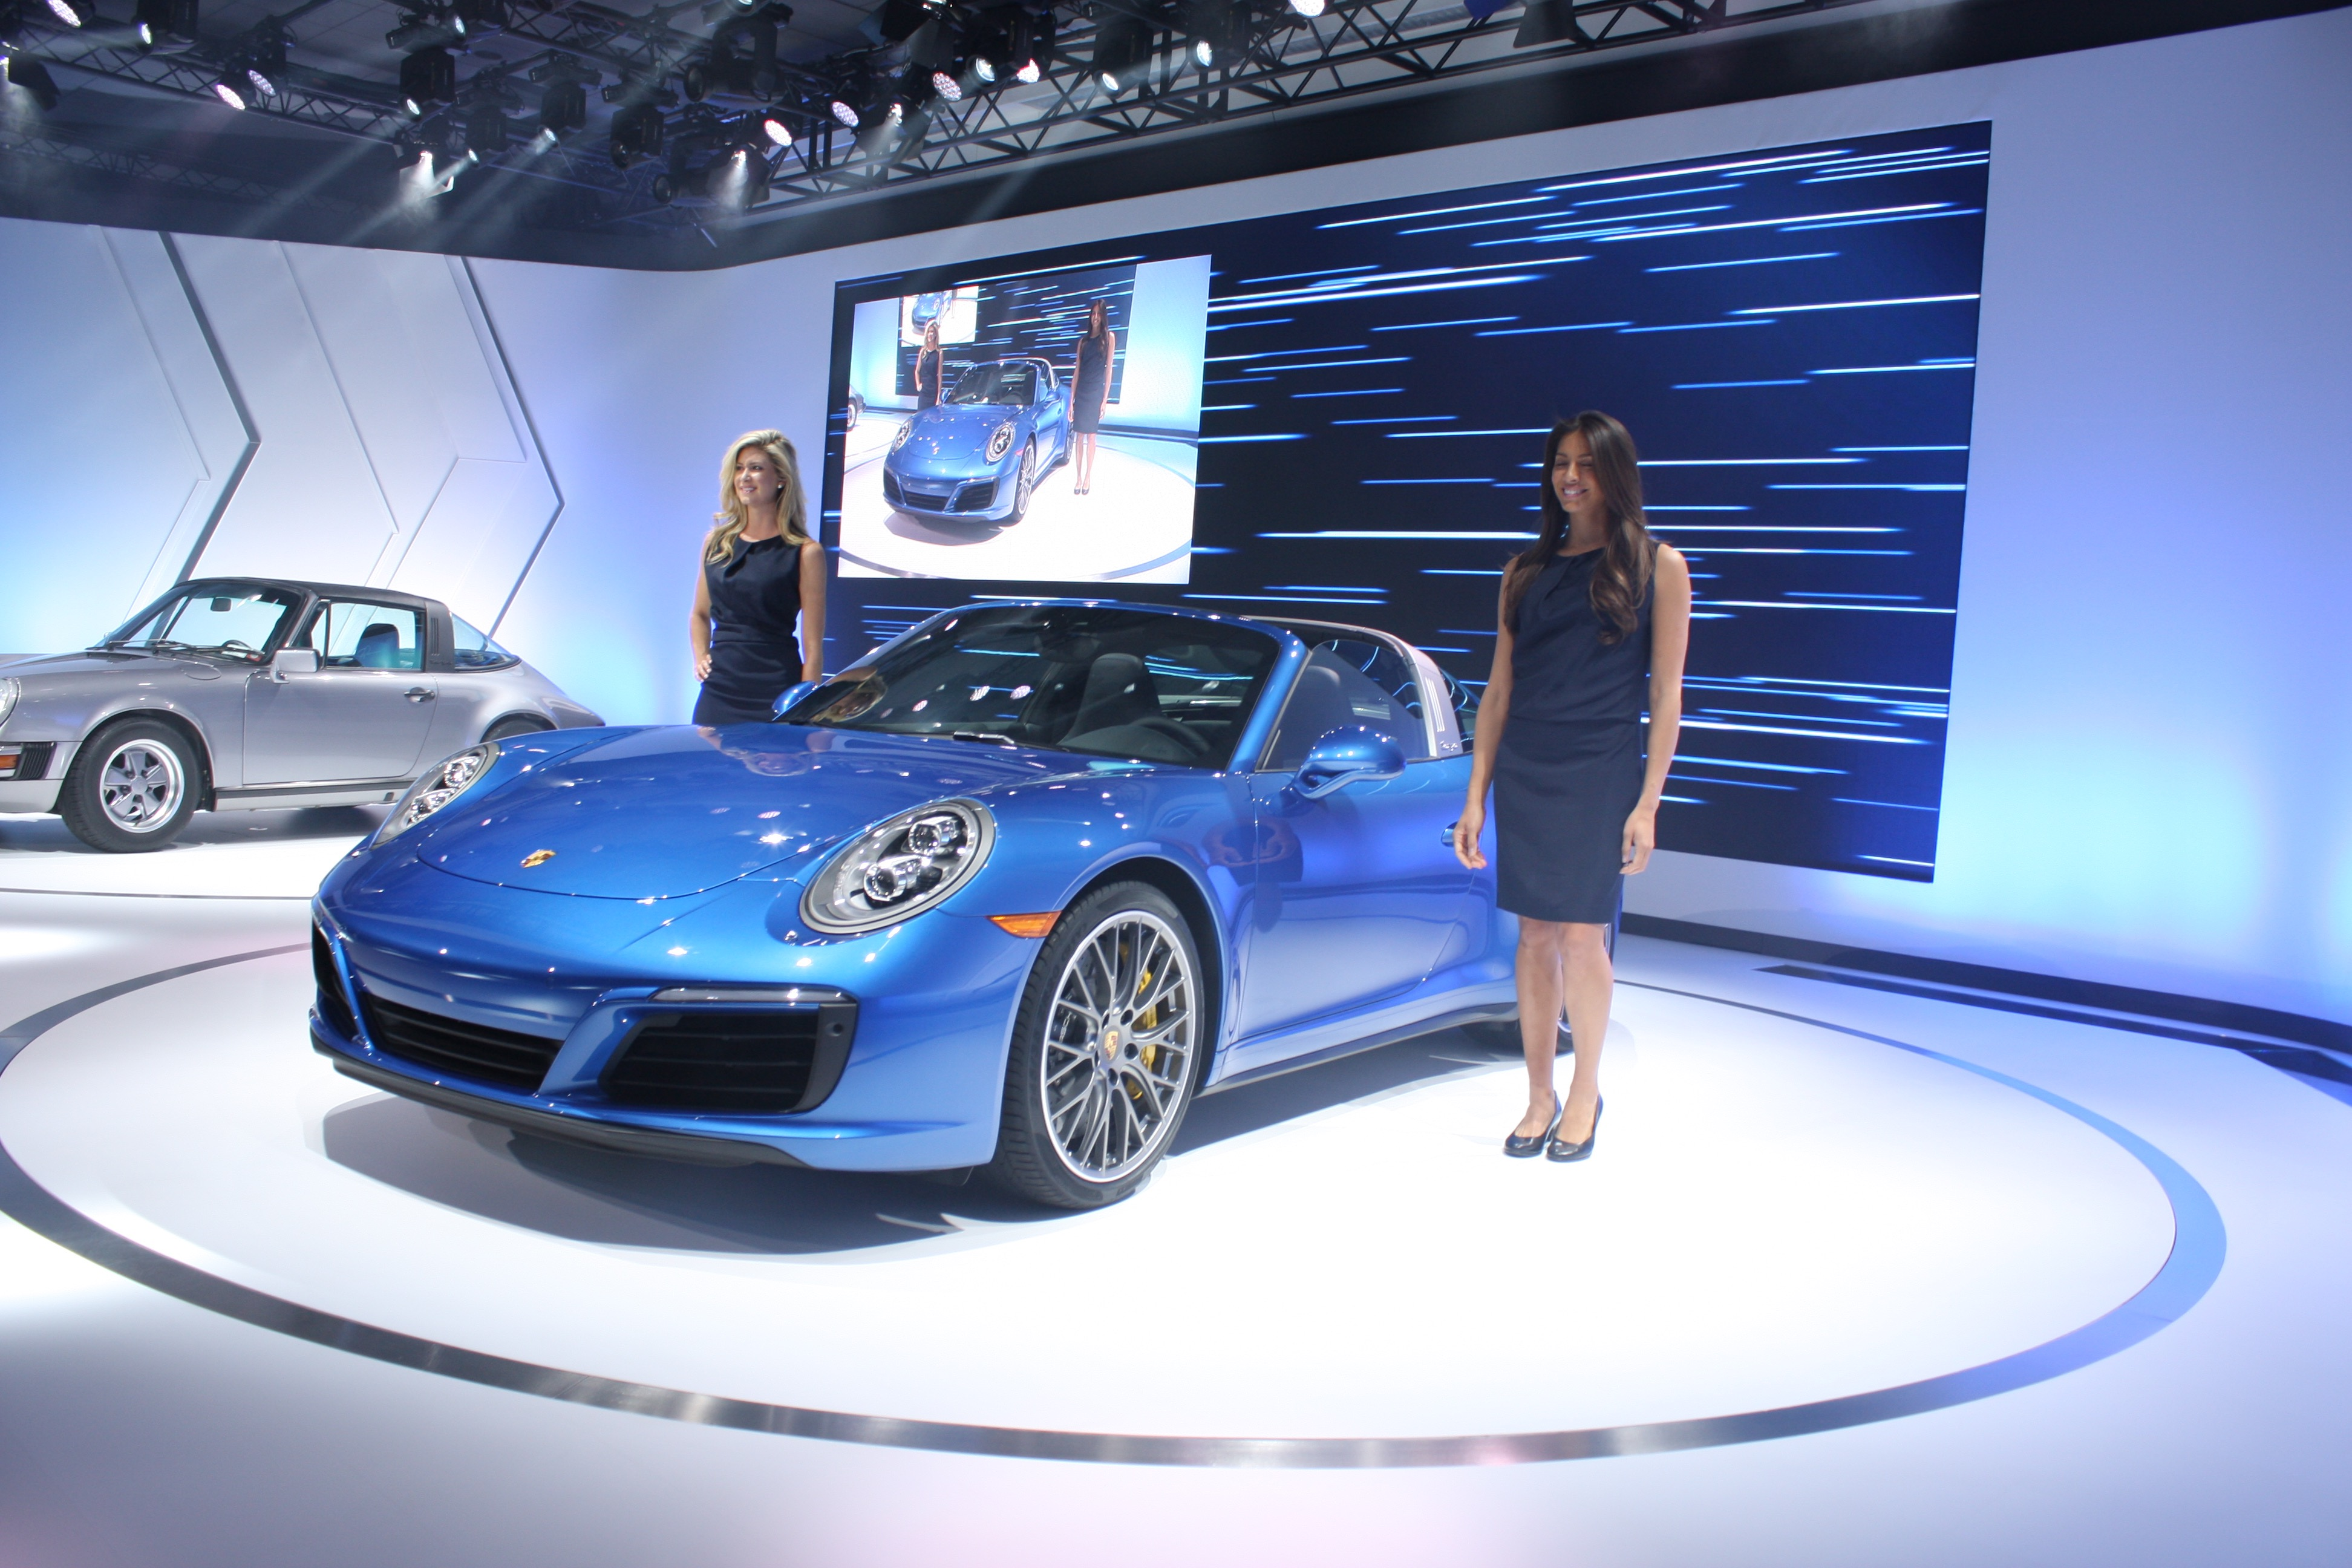 2017 Porsche 911 Targa Makes Los Angeles Auto Show Debut: Video